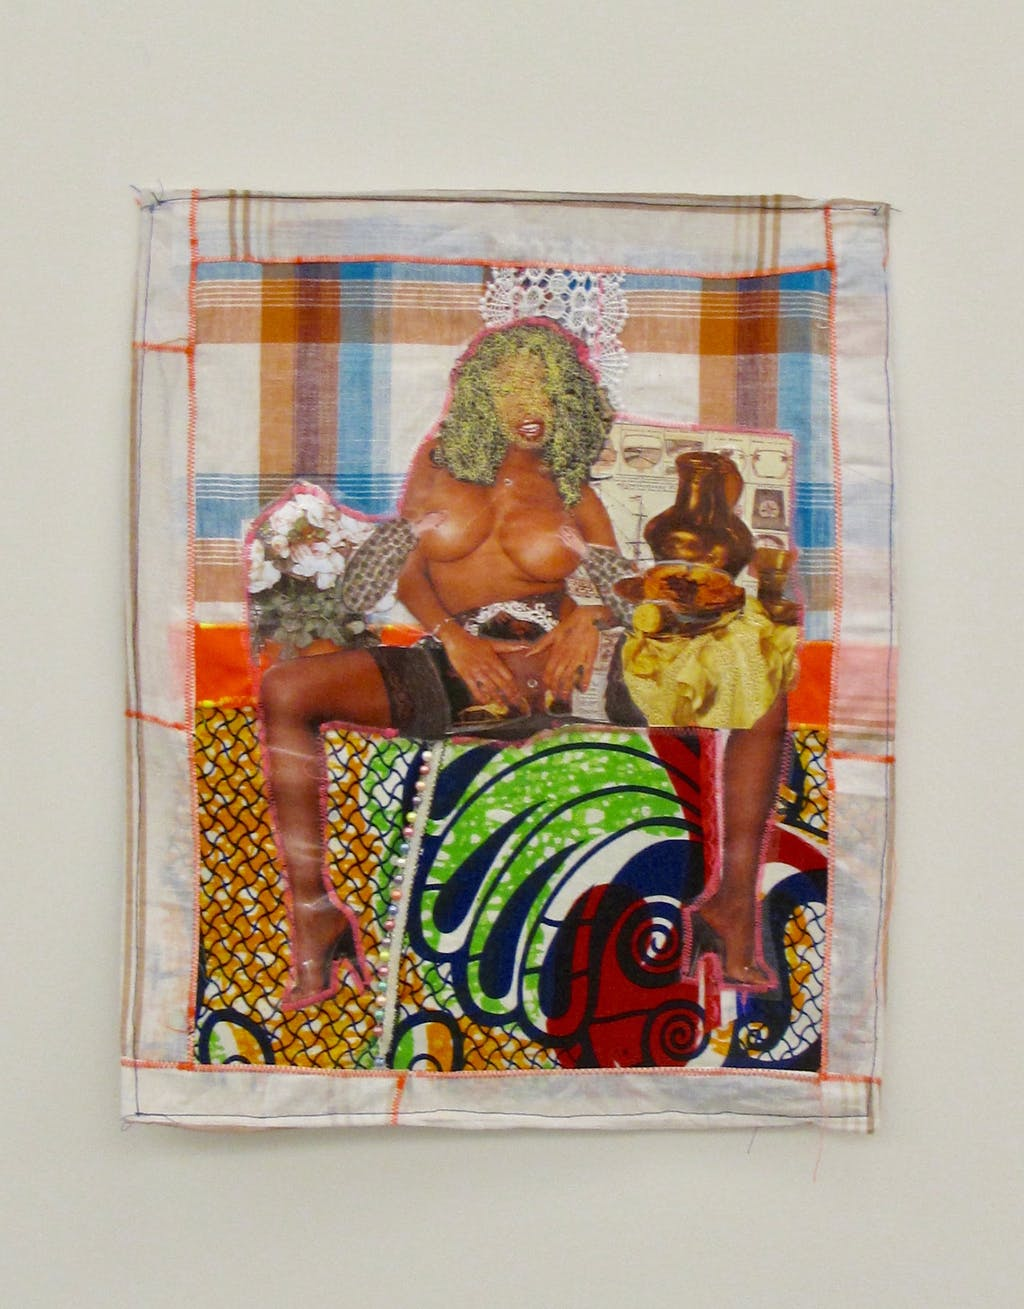 Patricia Kaersenhout Your History Makes Me So Horny, 2011 mixed media on textile, 50 cm x 40 cm, framed in perspex box (7) - © Paris Internationale